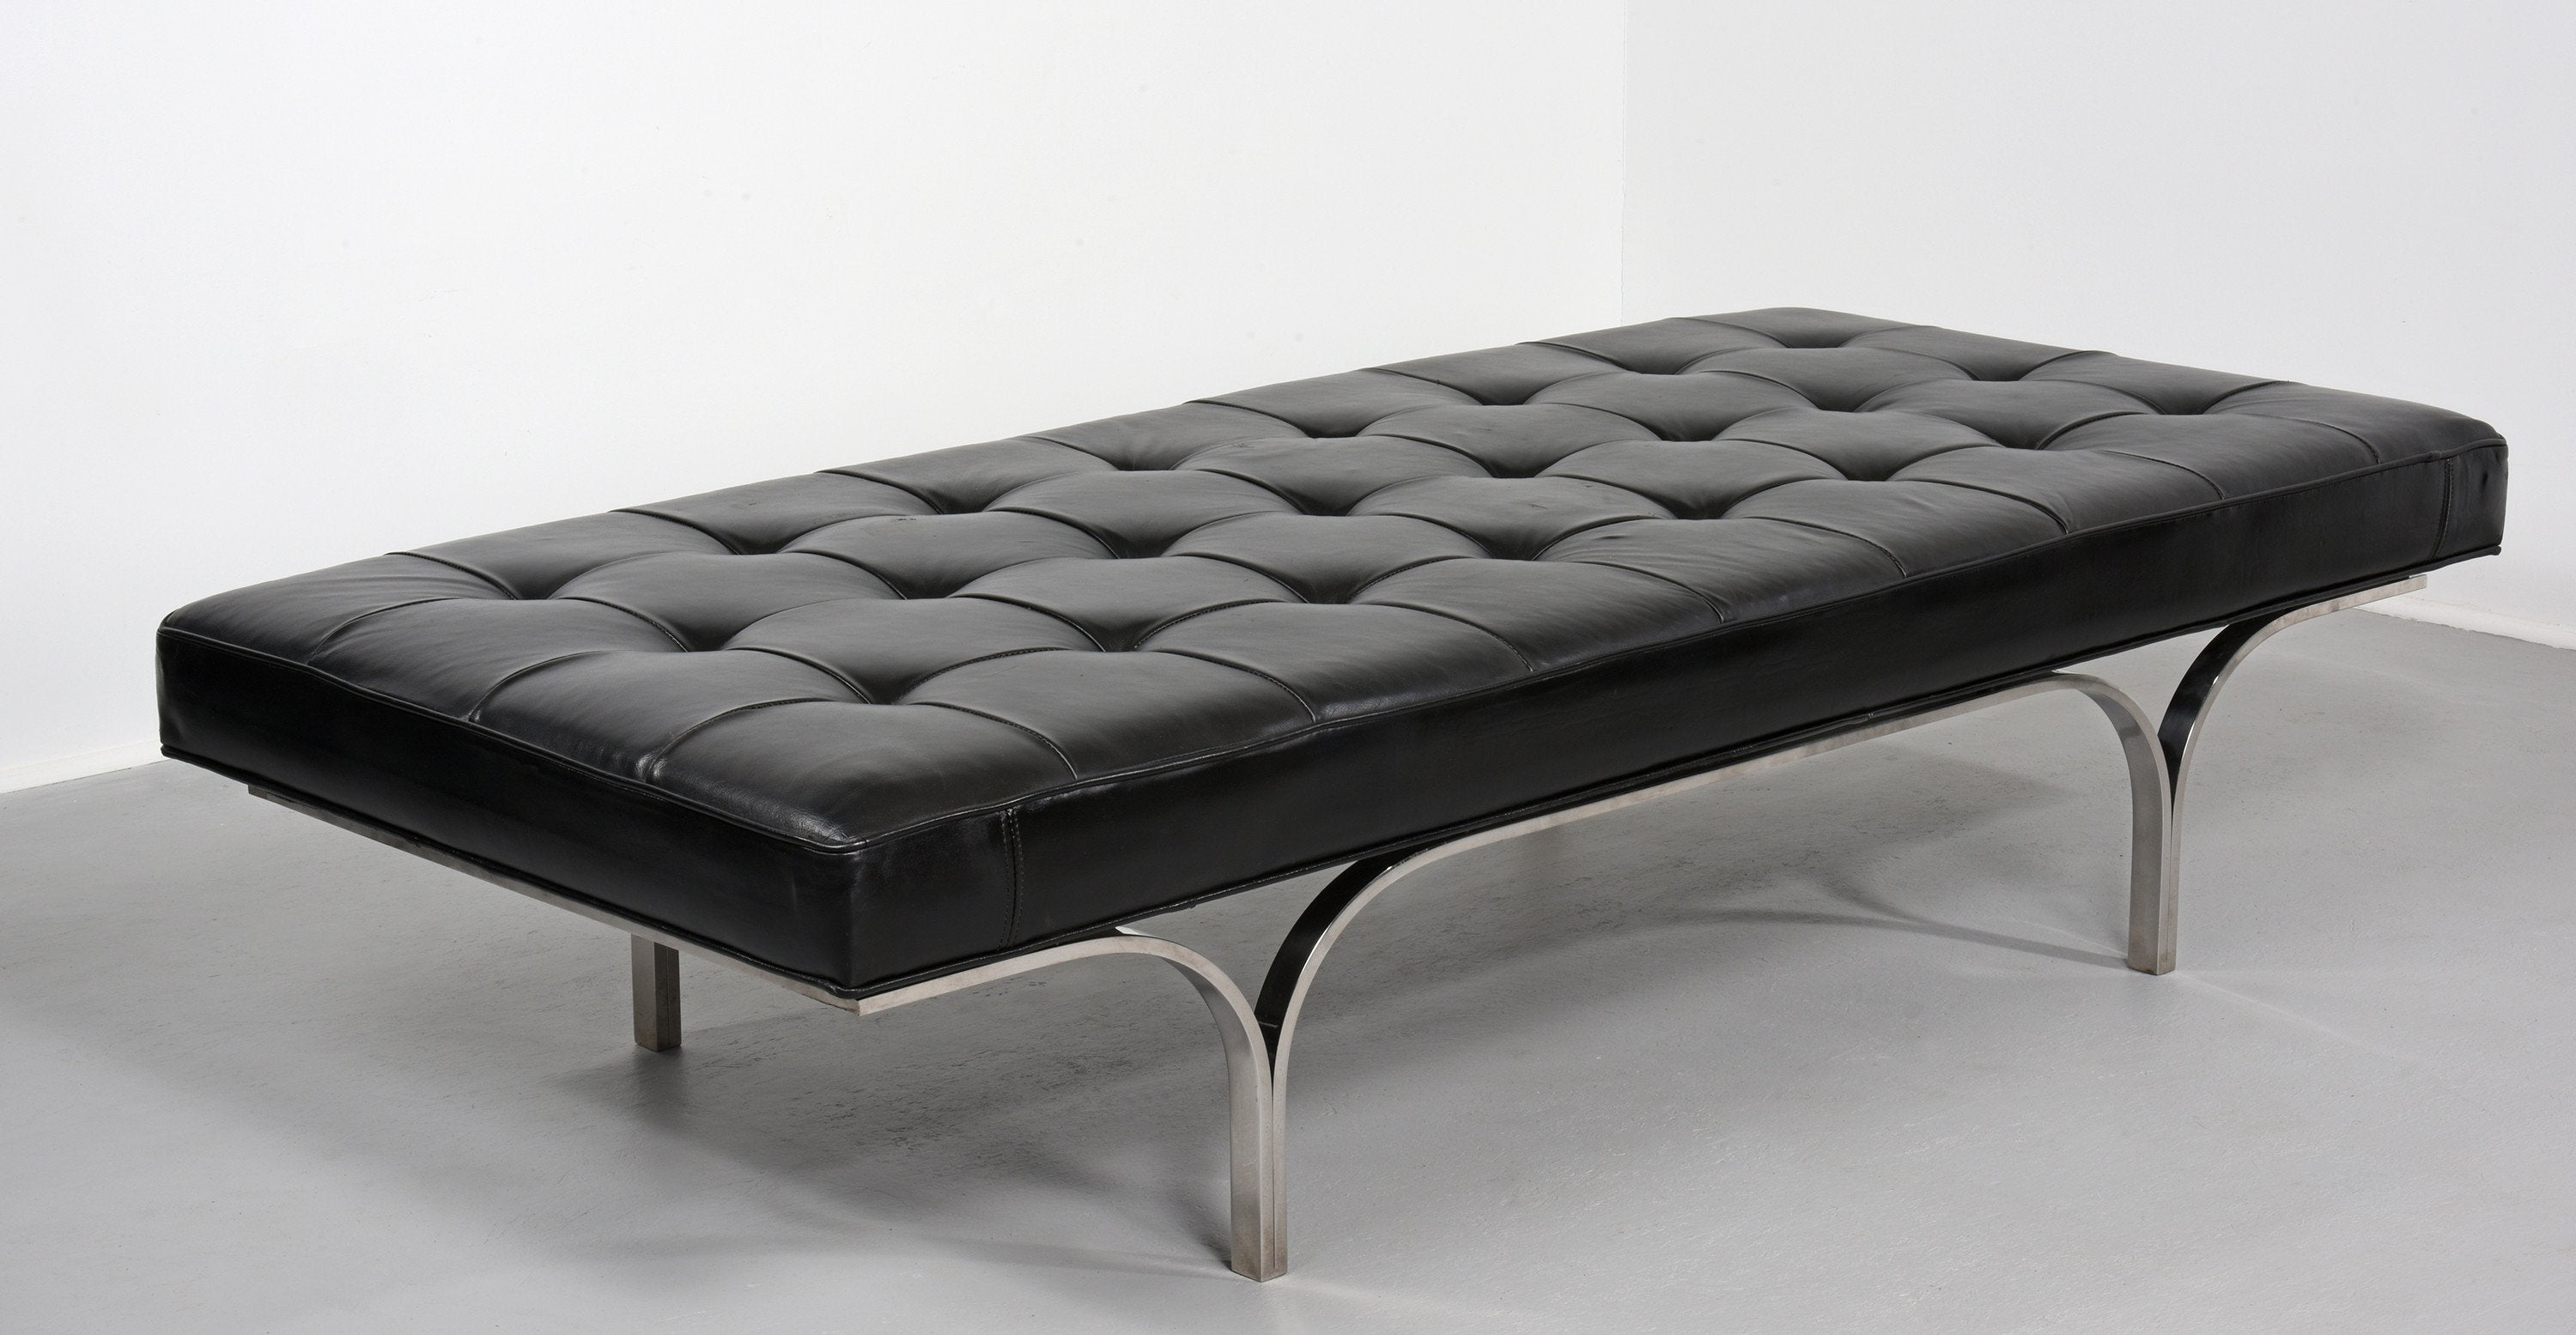 Erwine and Estelle Laverne Philharmonic Bench in Original Leather circa 1961